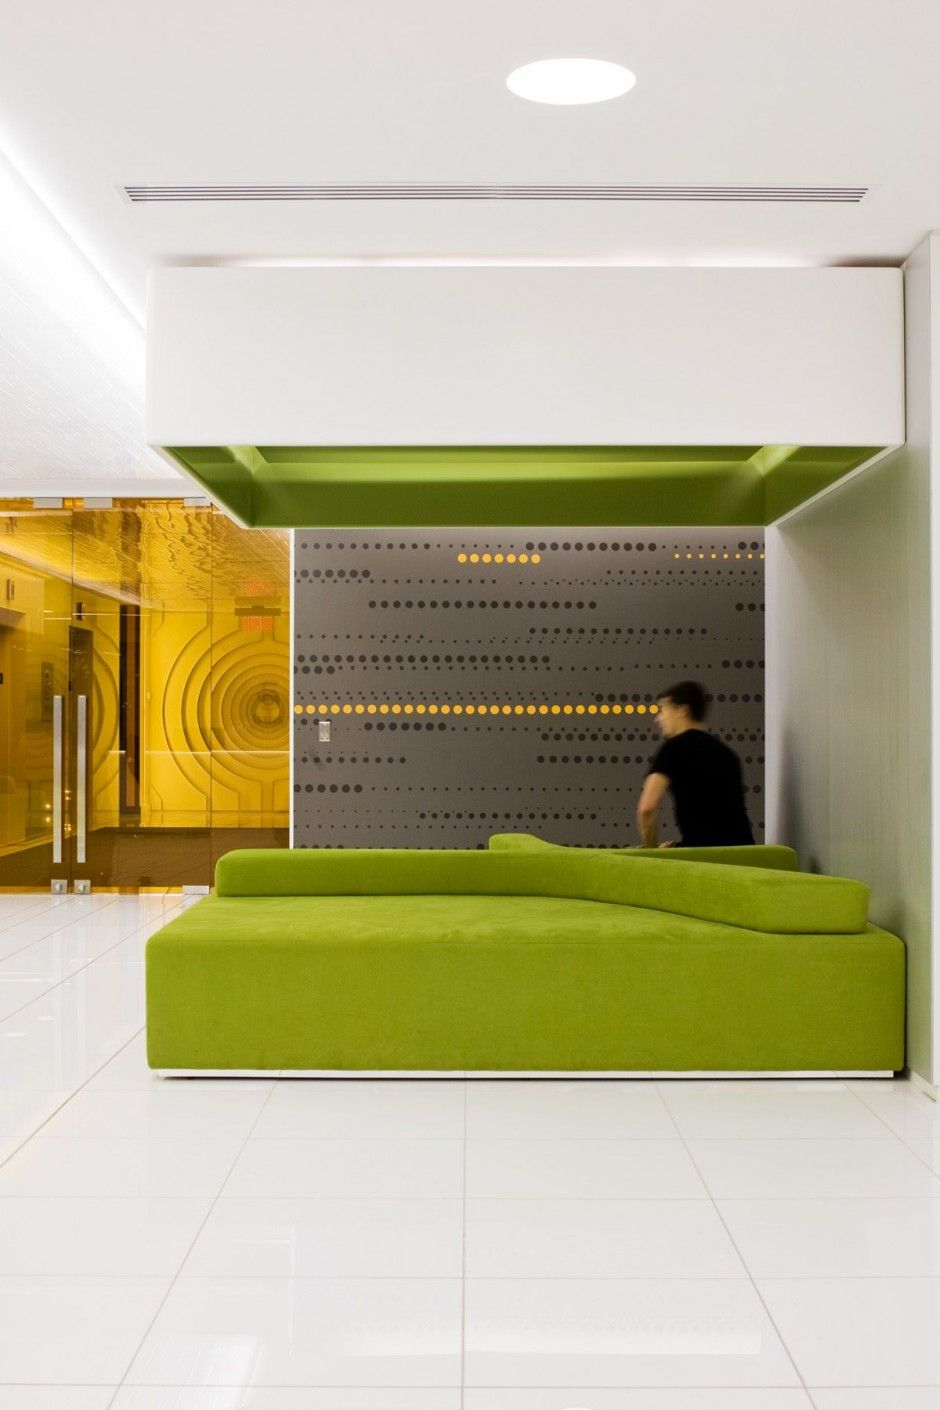 Astral media office interior by lemay associés